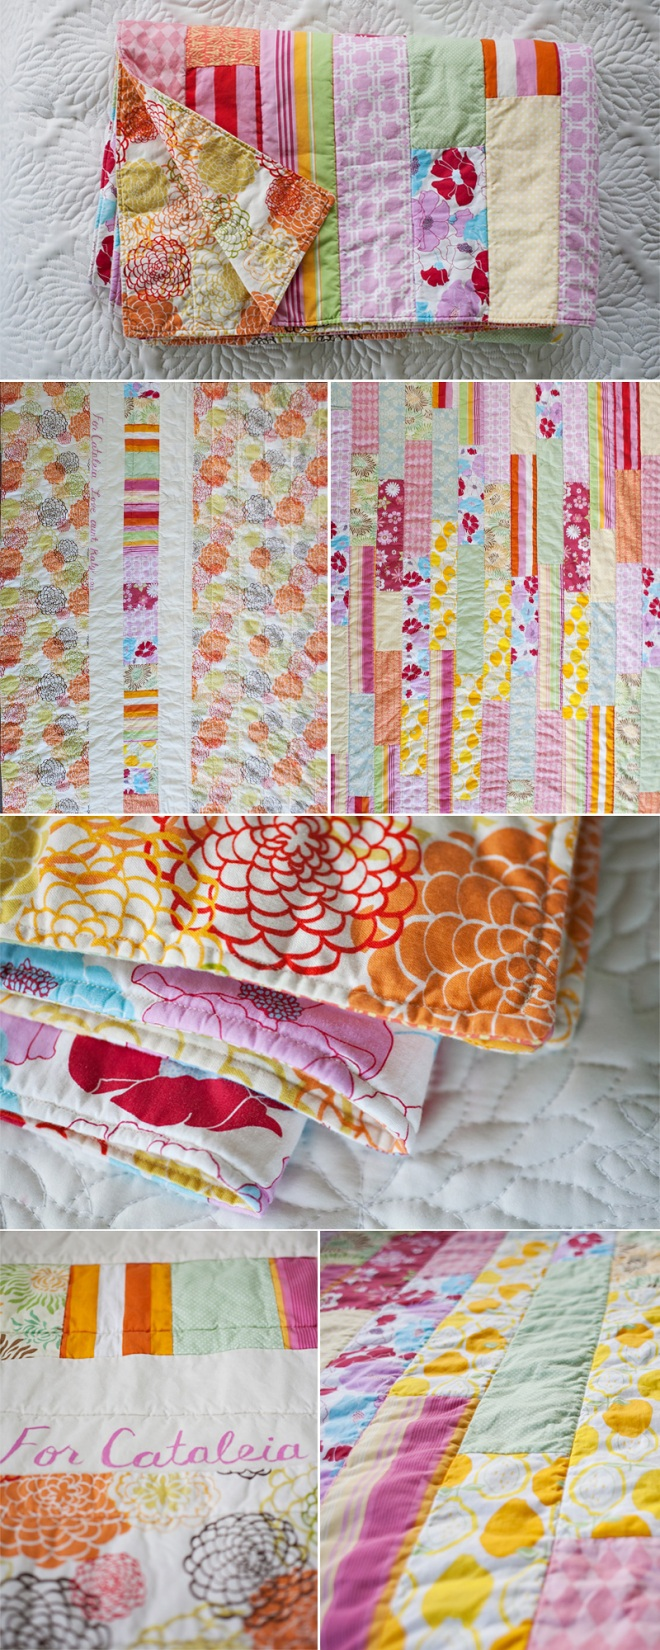 A quilt for Cataleia - quilting projects on Permanent Riot